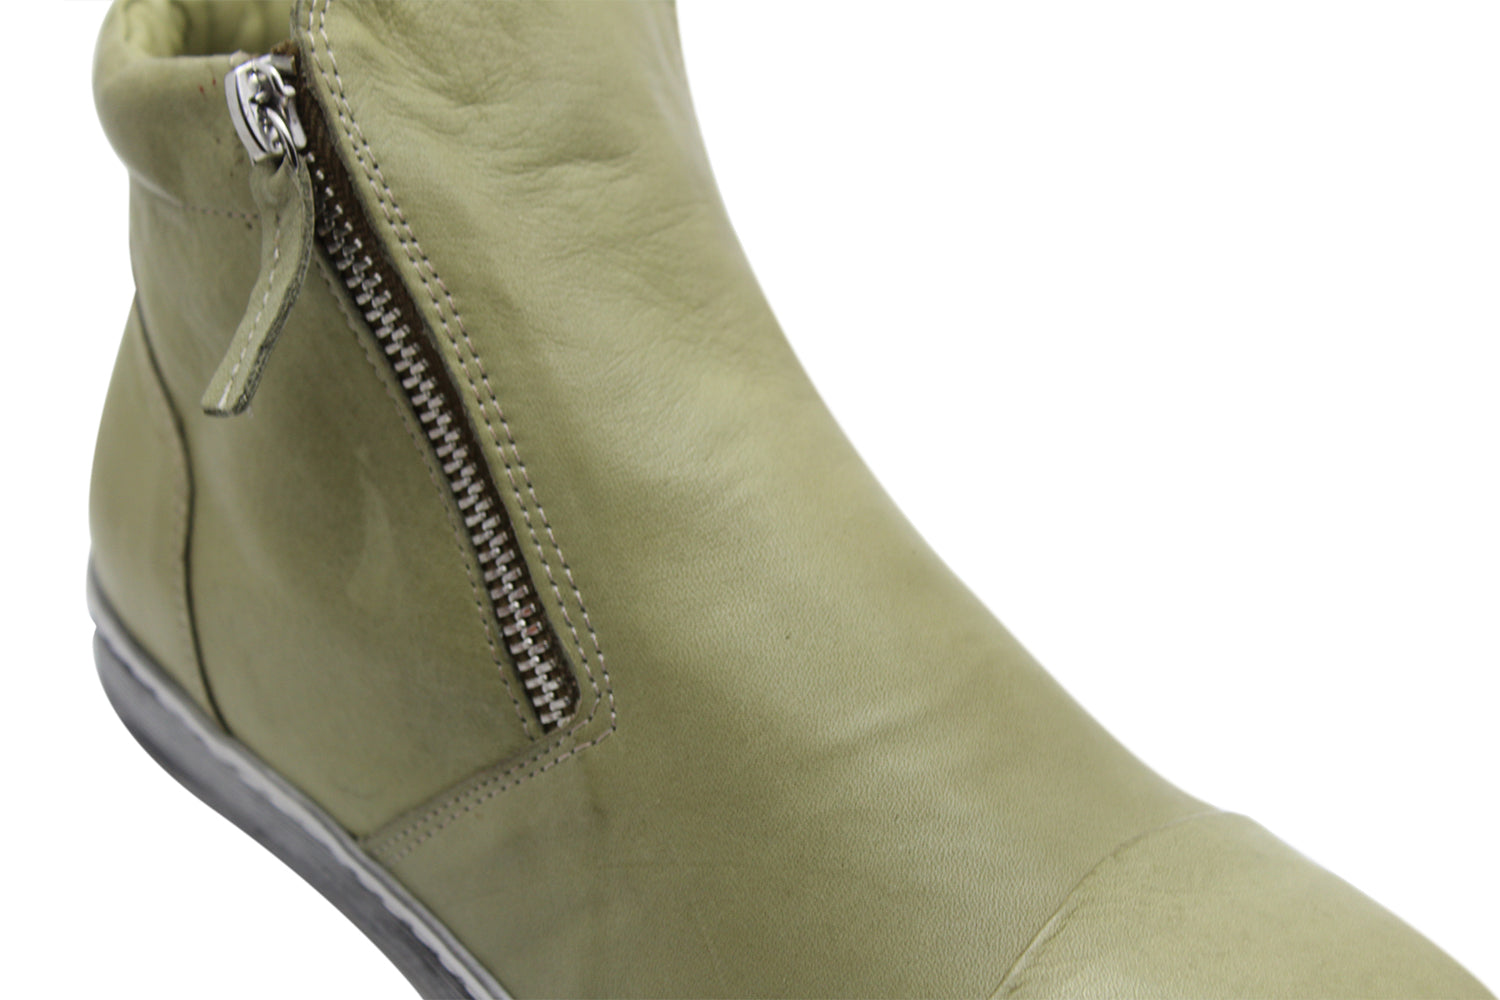 TRUDY WOMENS FLAT BOOT